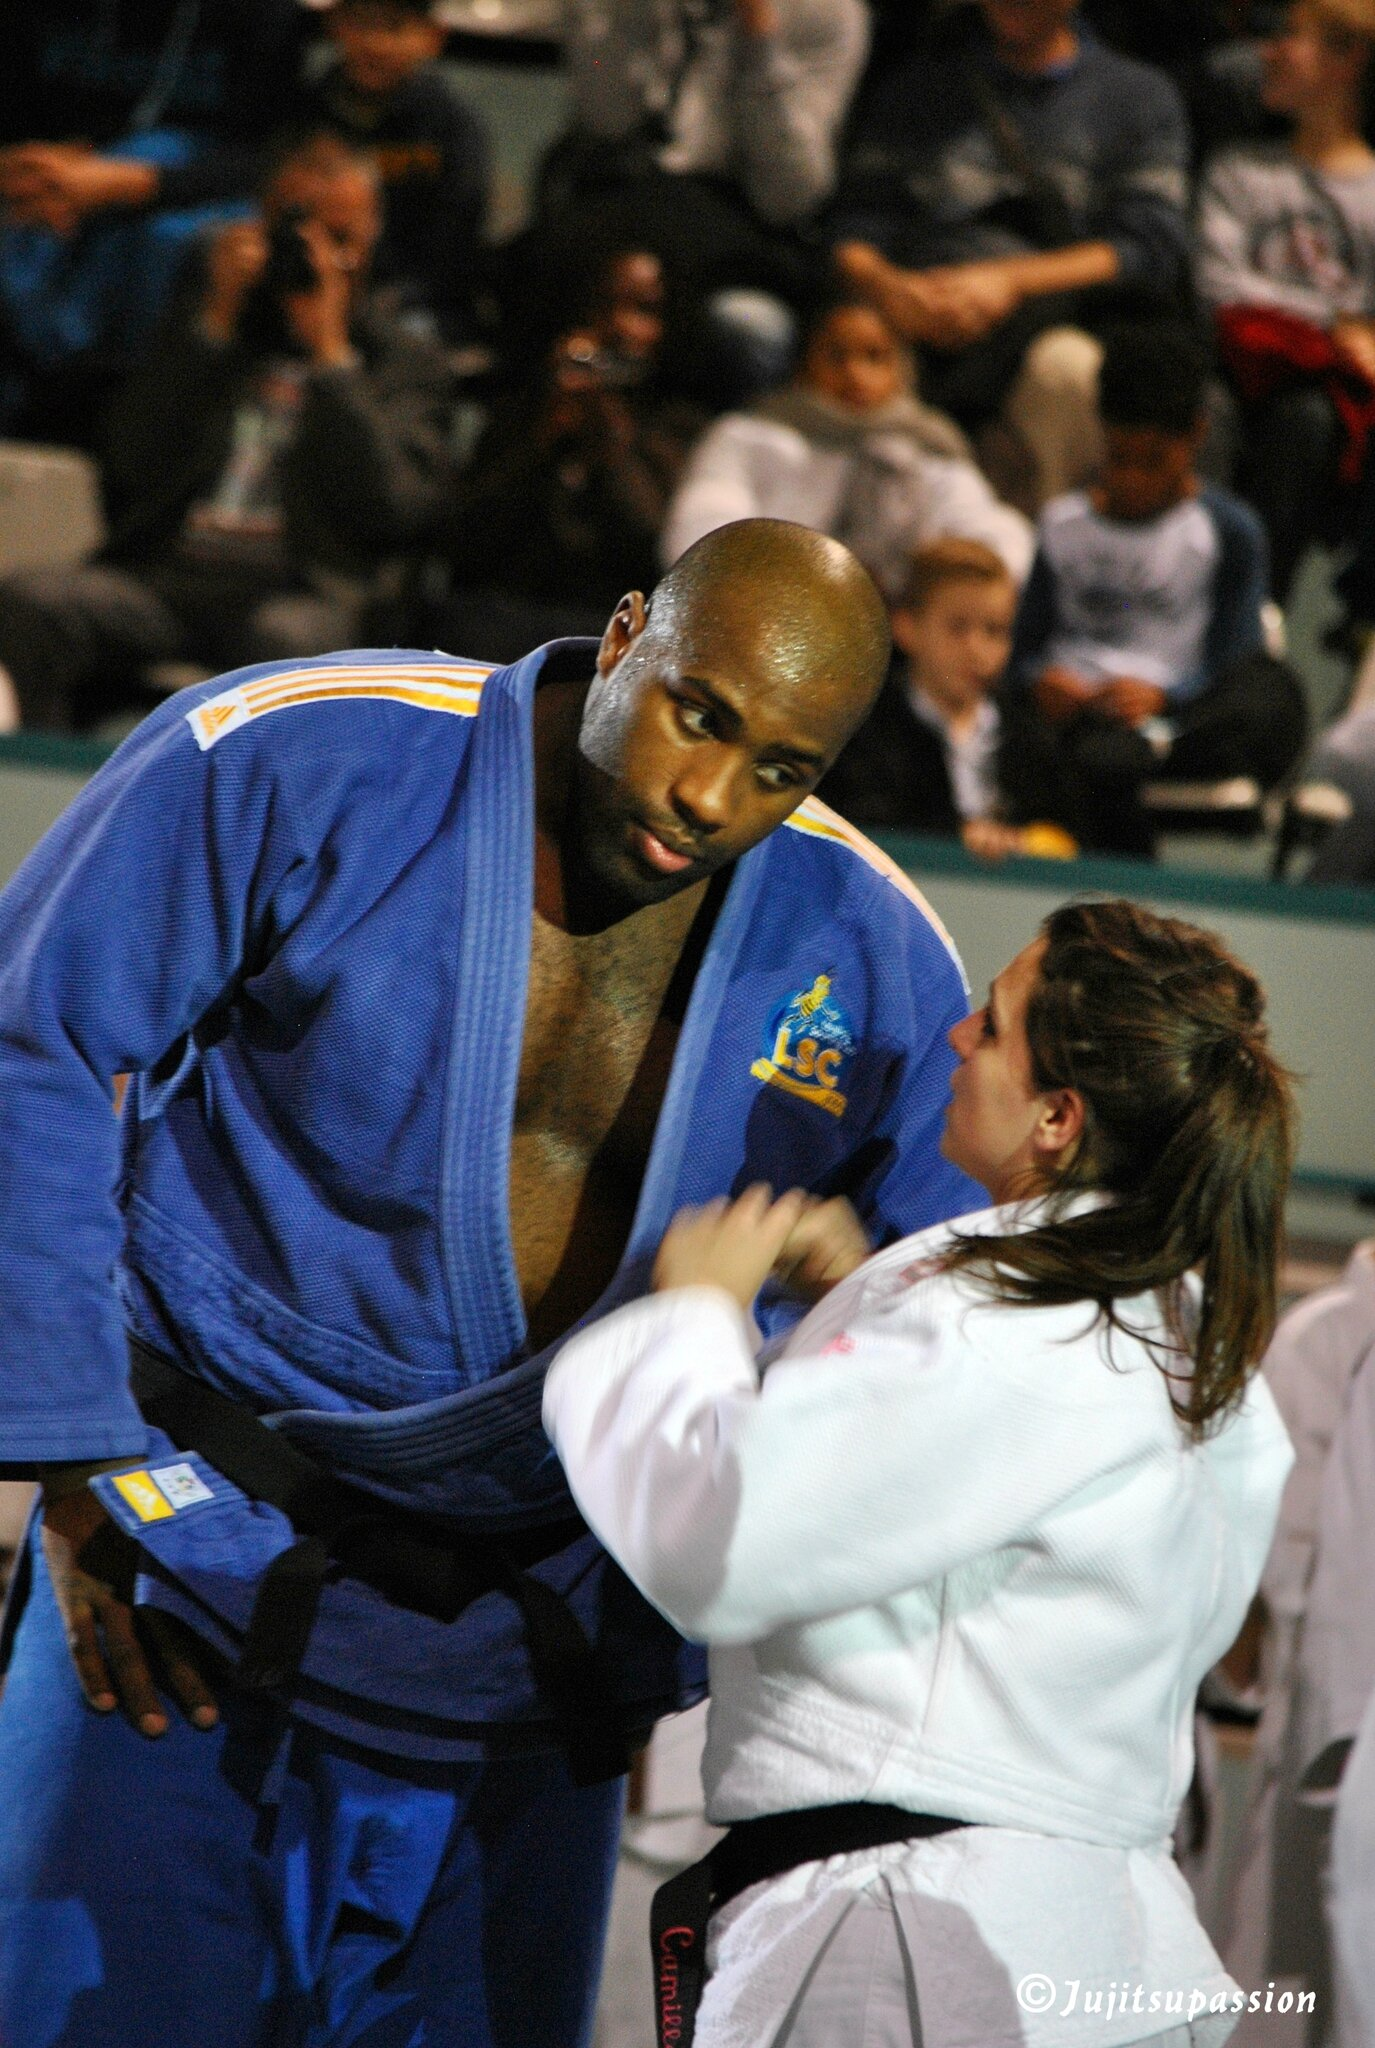 teddy riner tours jujitsupassion judopassion. Black Bedroom Furniture Sets. Home Design Ideas